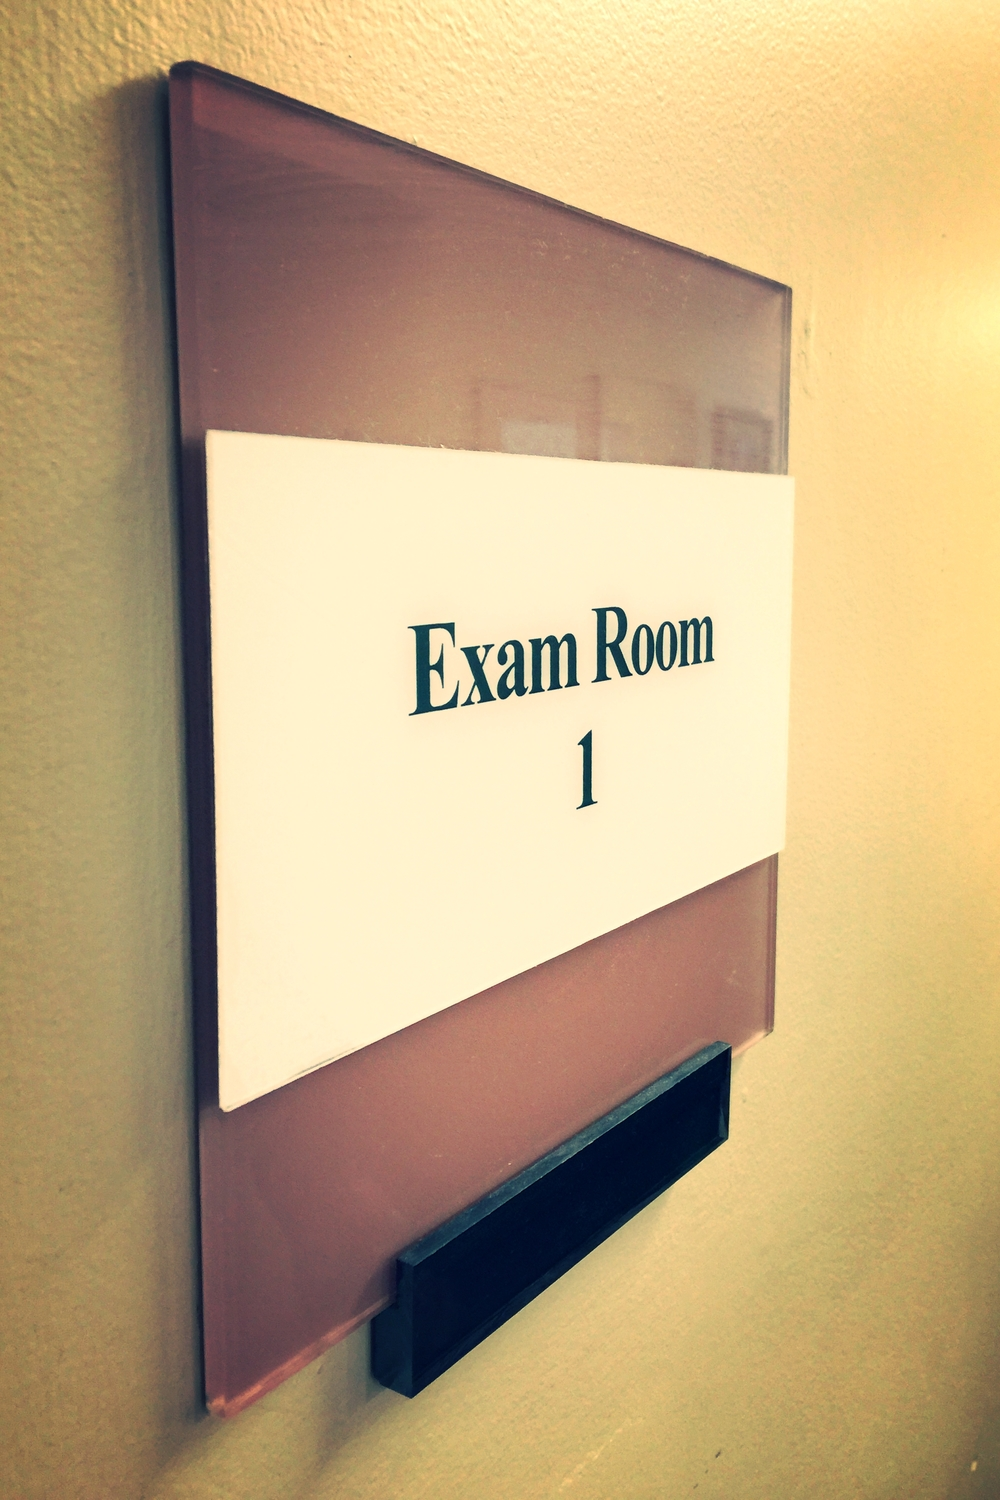 ExamRoom_OfficeSigns_PremiumSignSolutions